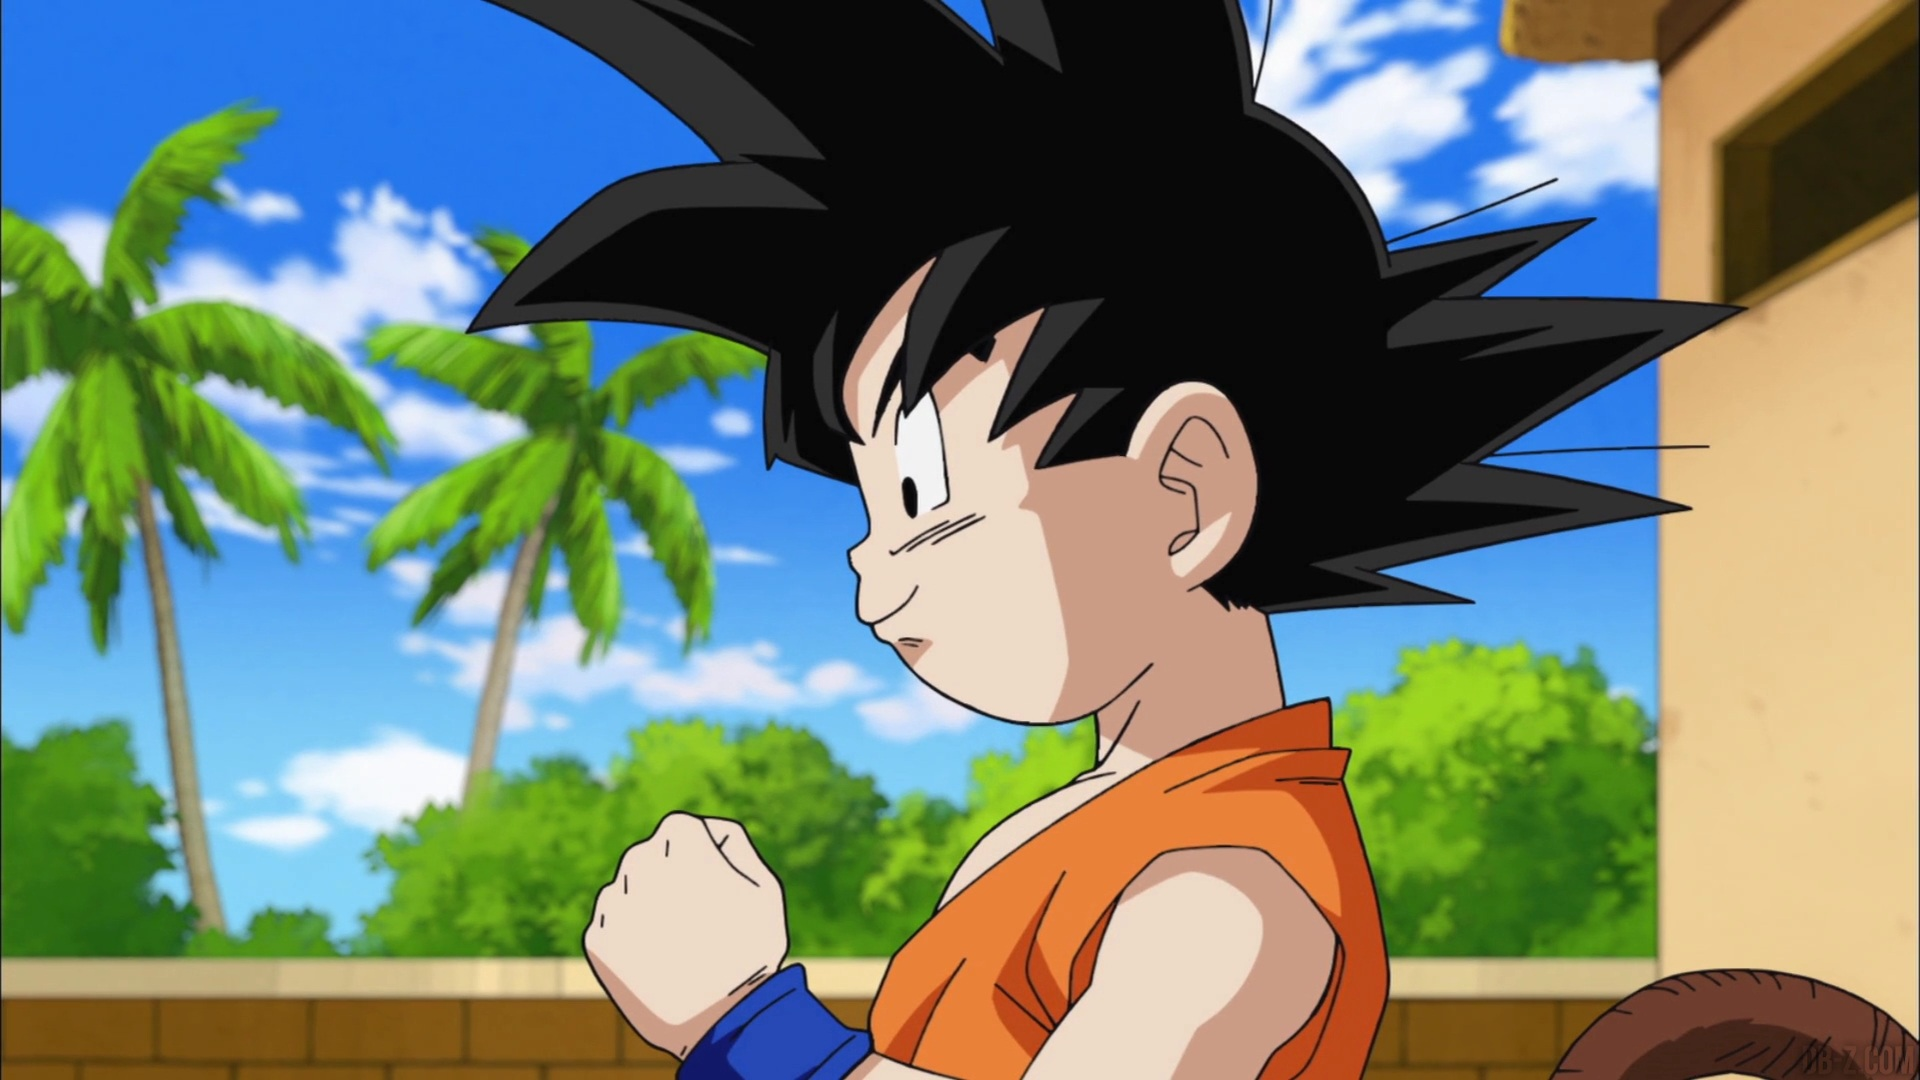 Dragon-Ball-Super-Episode-84-image-57